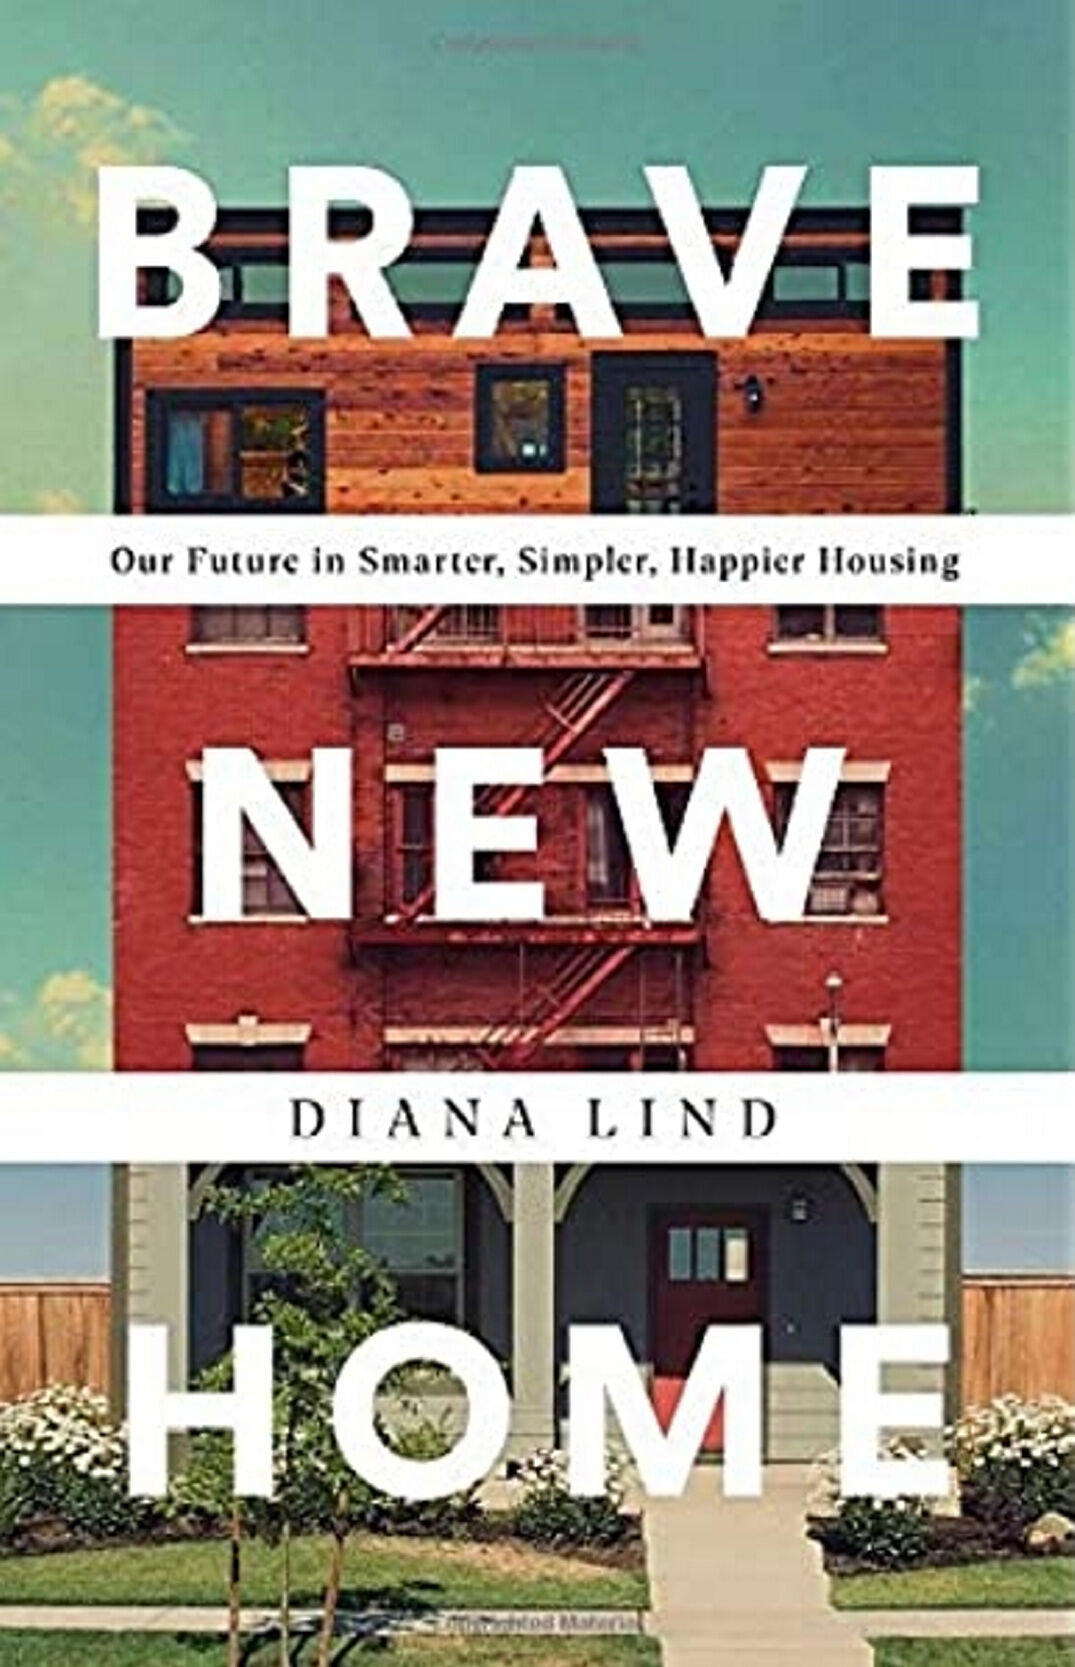 Is it time to rethink the single-family home as the American dream?